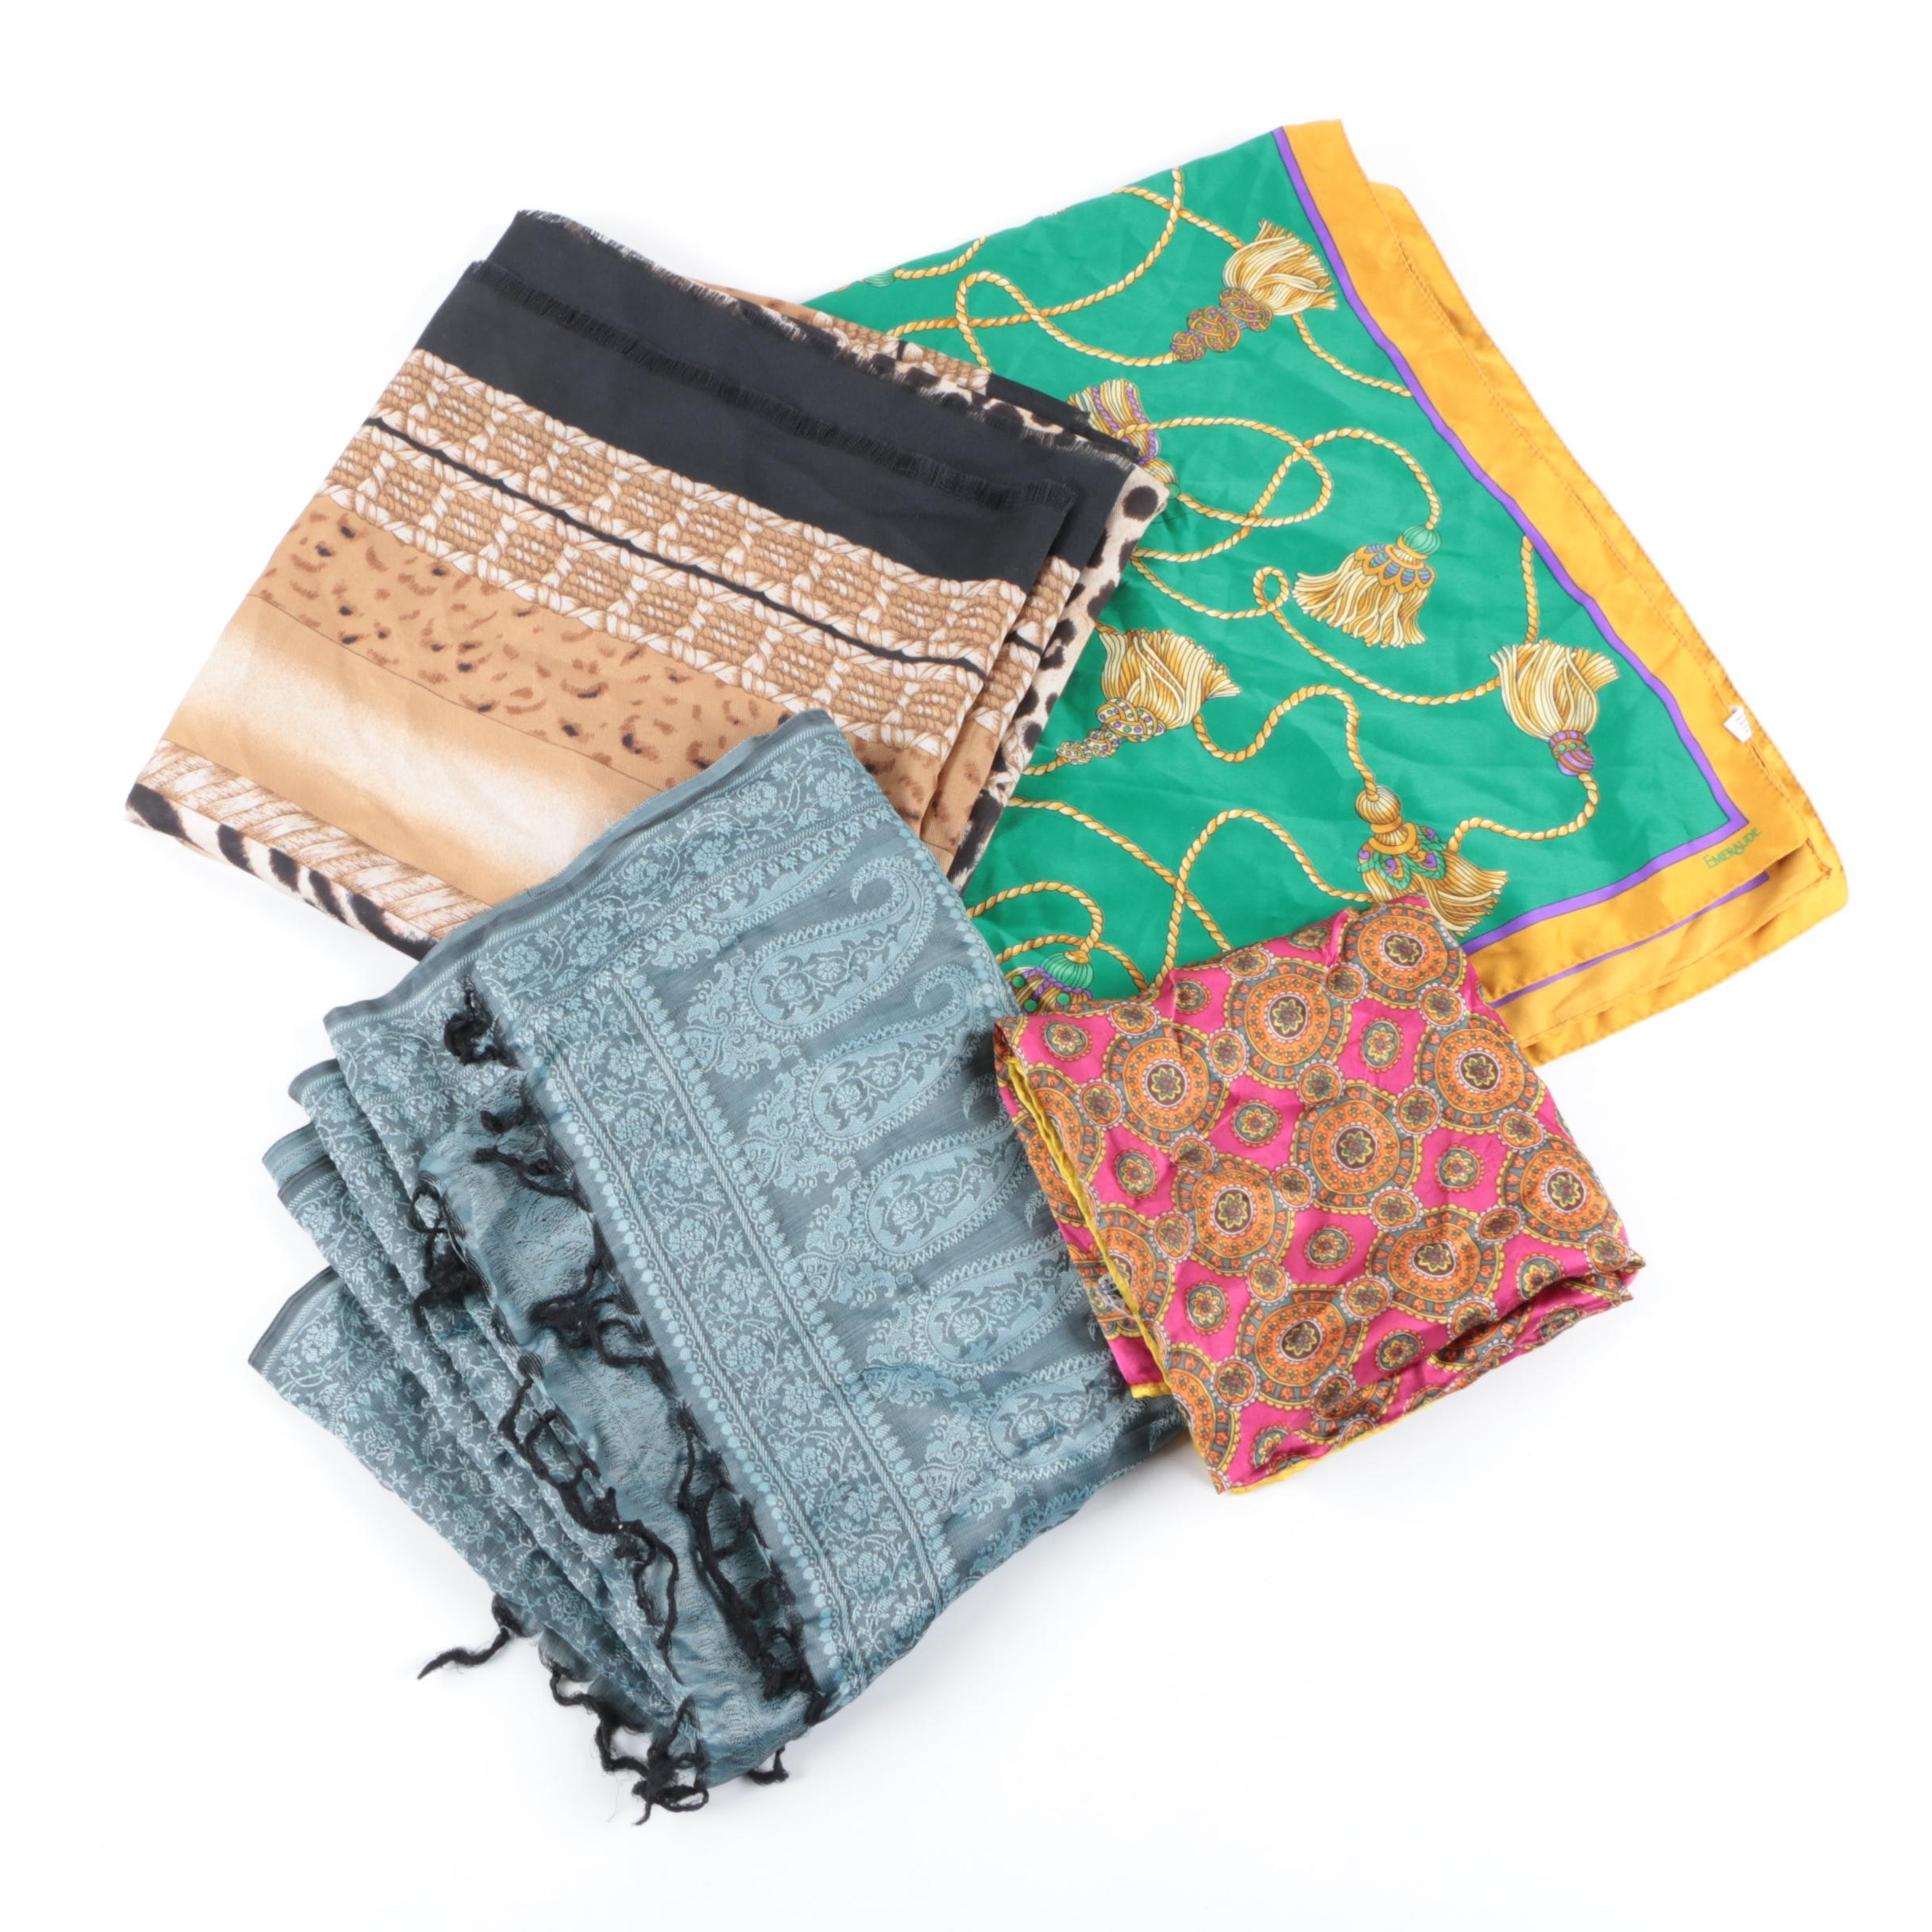 Fashion Scarves and Printed Scarves